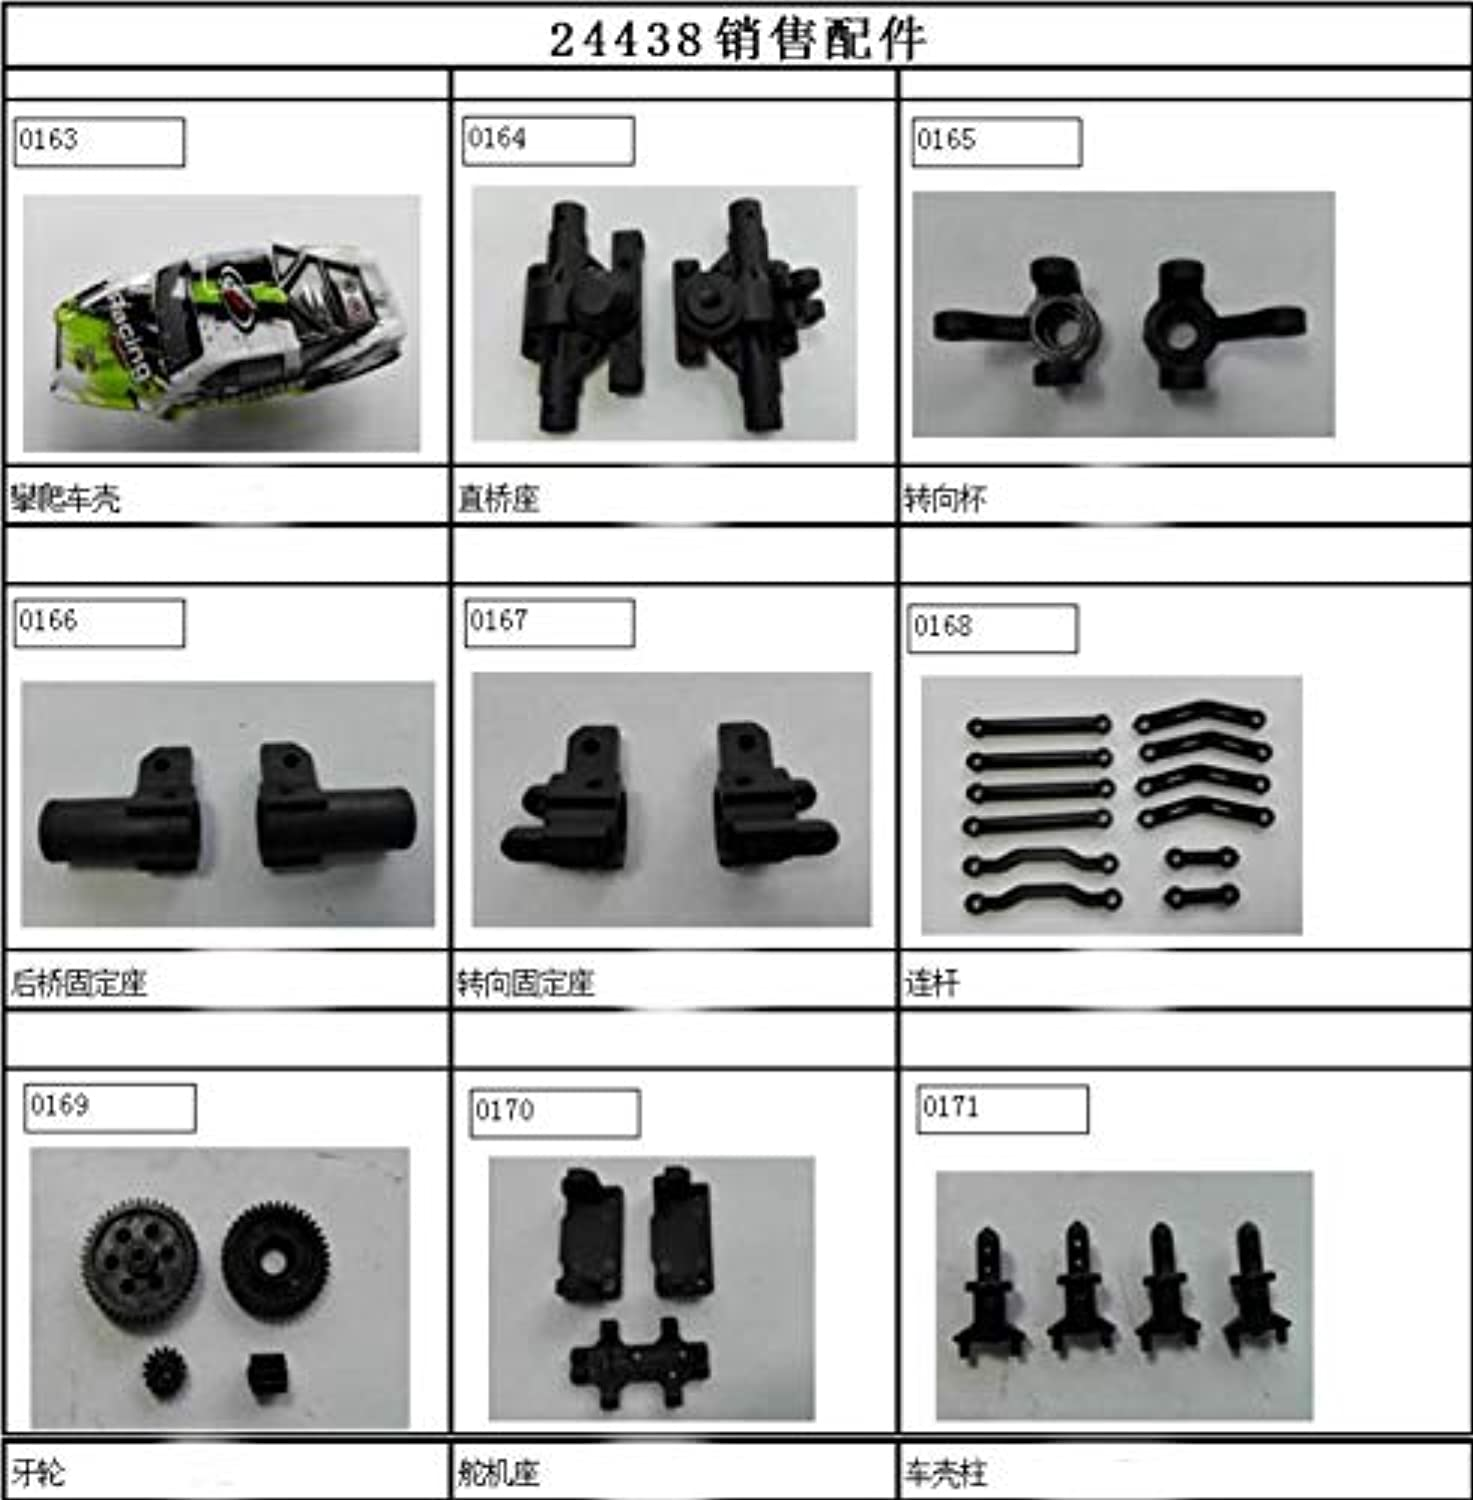 Laliva 24438 1 24 RC Car Spare Parts Shell Connecting Rod Gear Tire Shock Absorber Receiver Servo Motor Charger Screws Bearing  (color  0177)